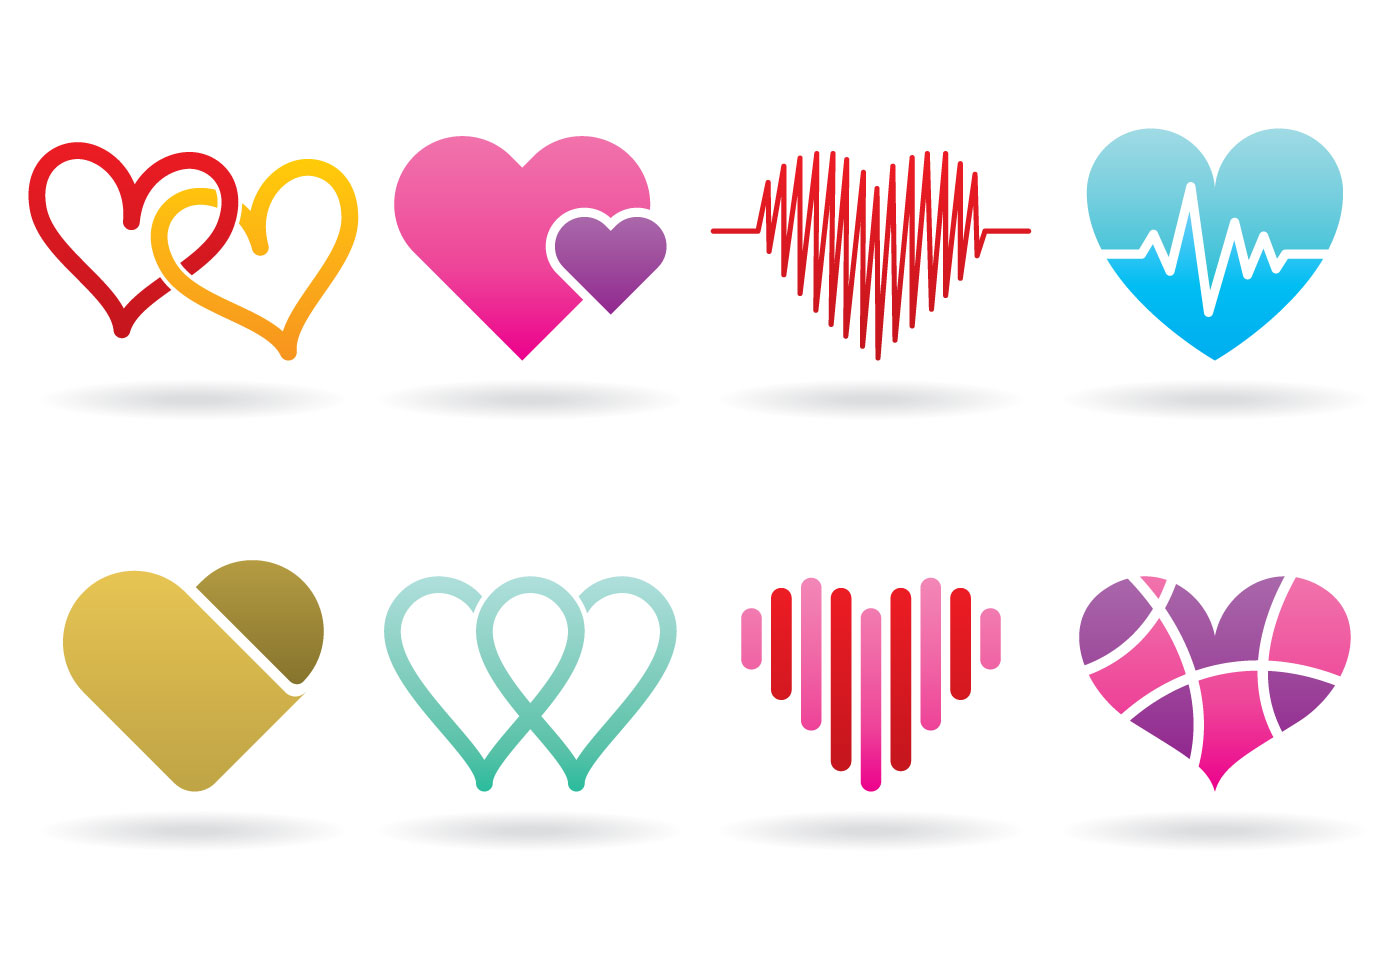 Broken Heart Logo Design